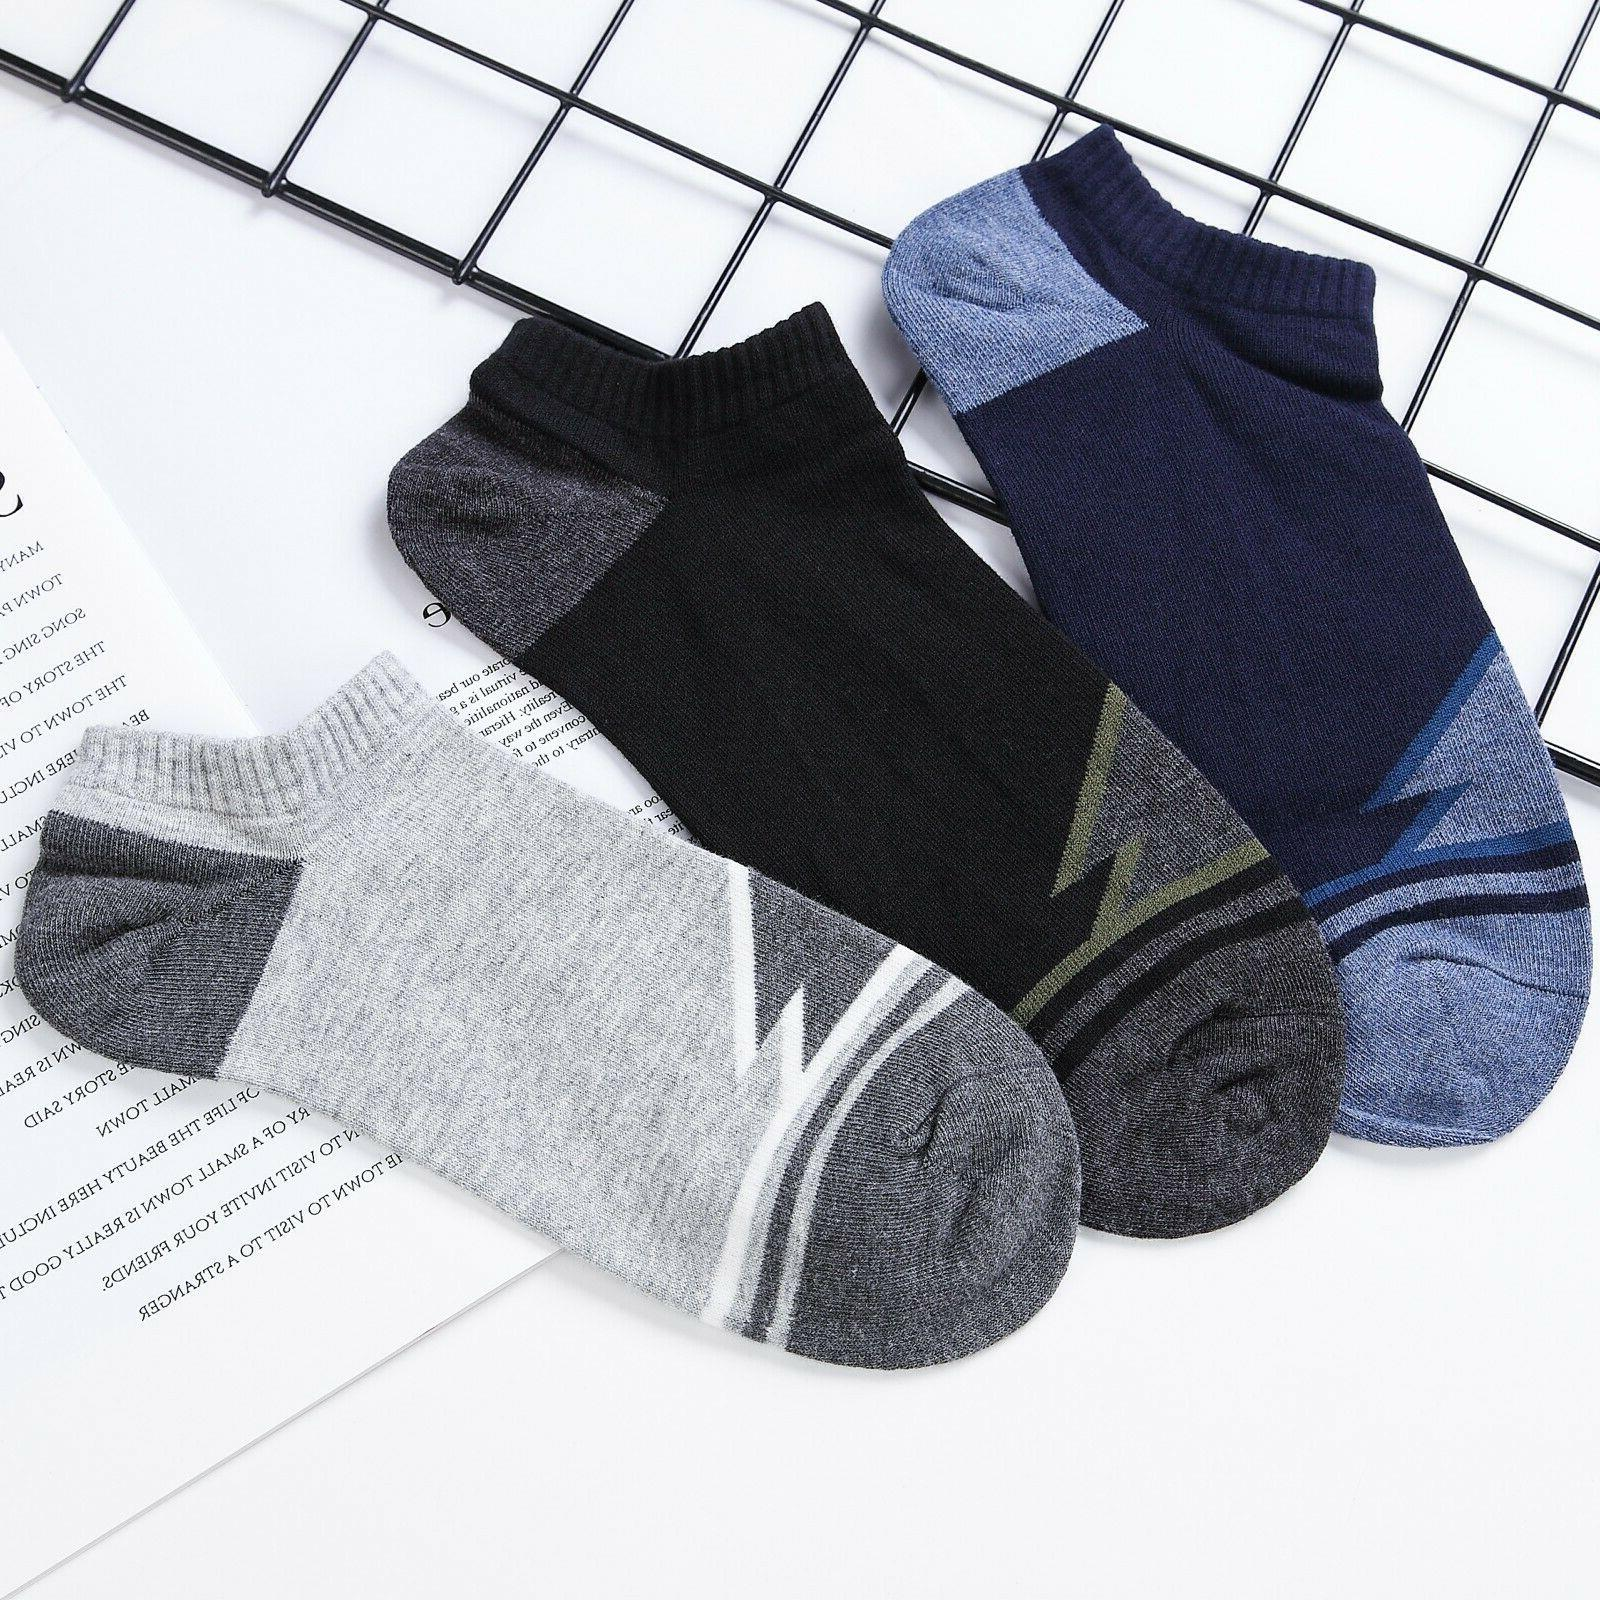 6 Cut Ankle Cotton Sport